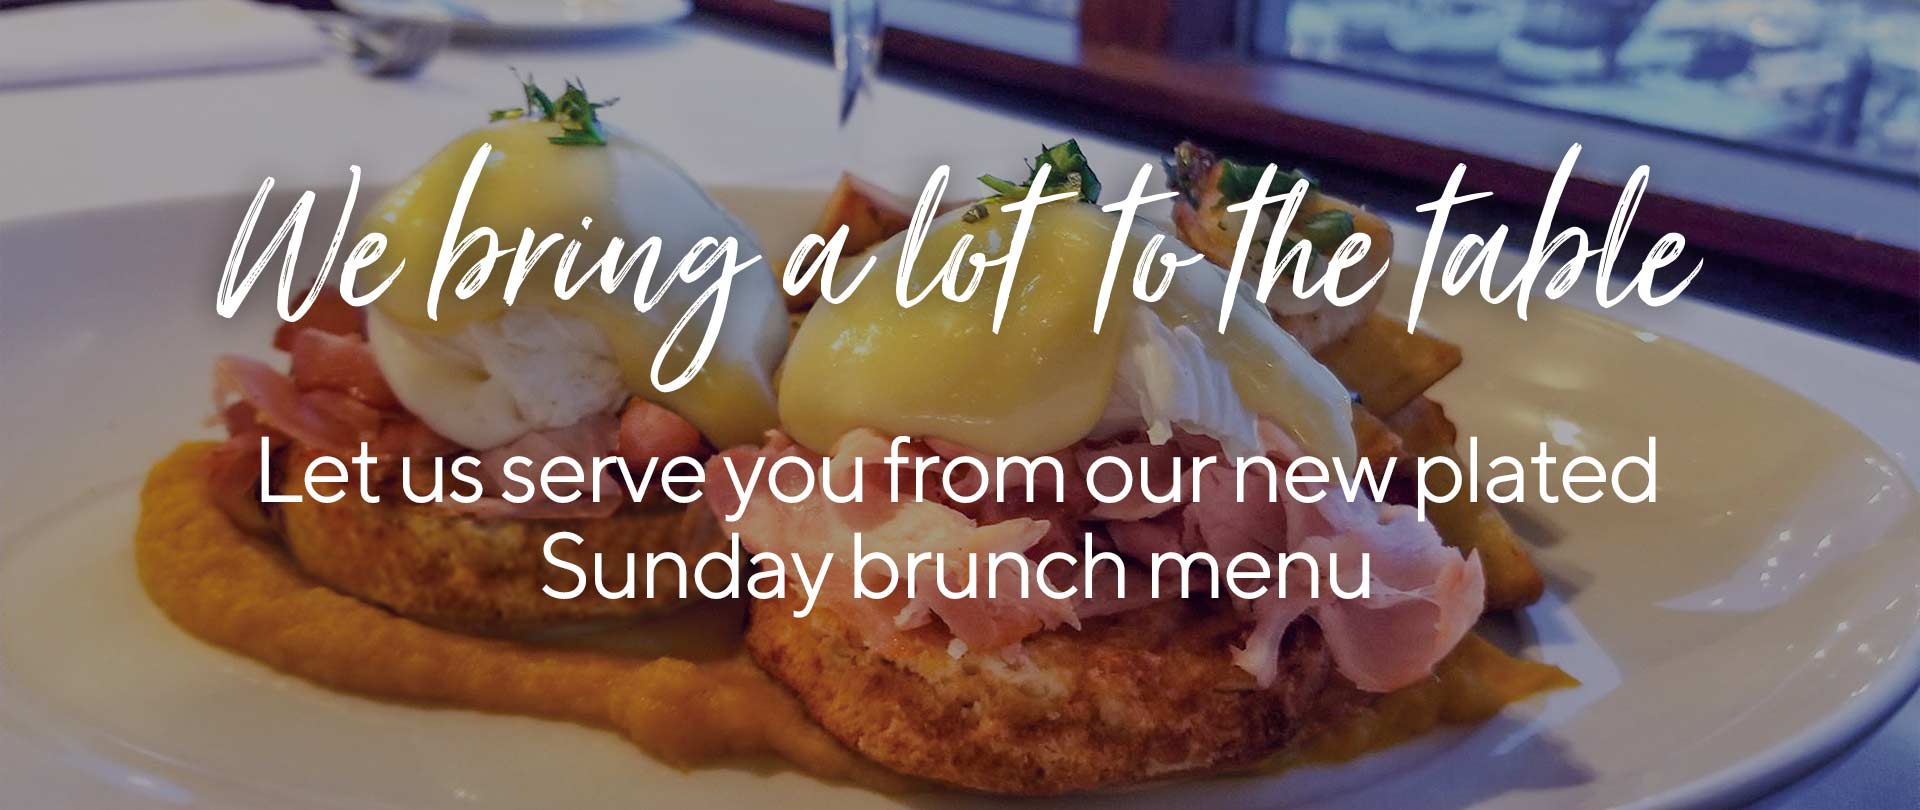 We bring a lot to the table. Let us serve you from our new plated Sunday brunch menu